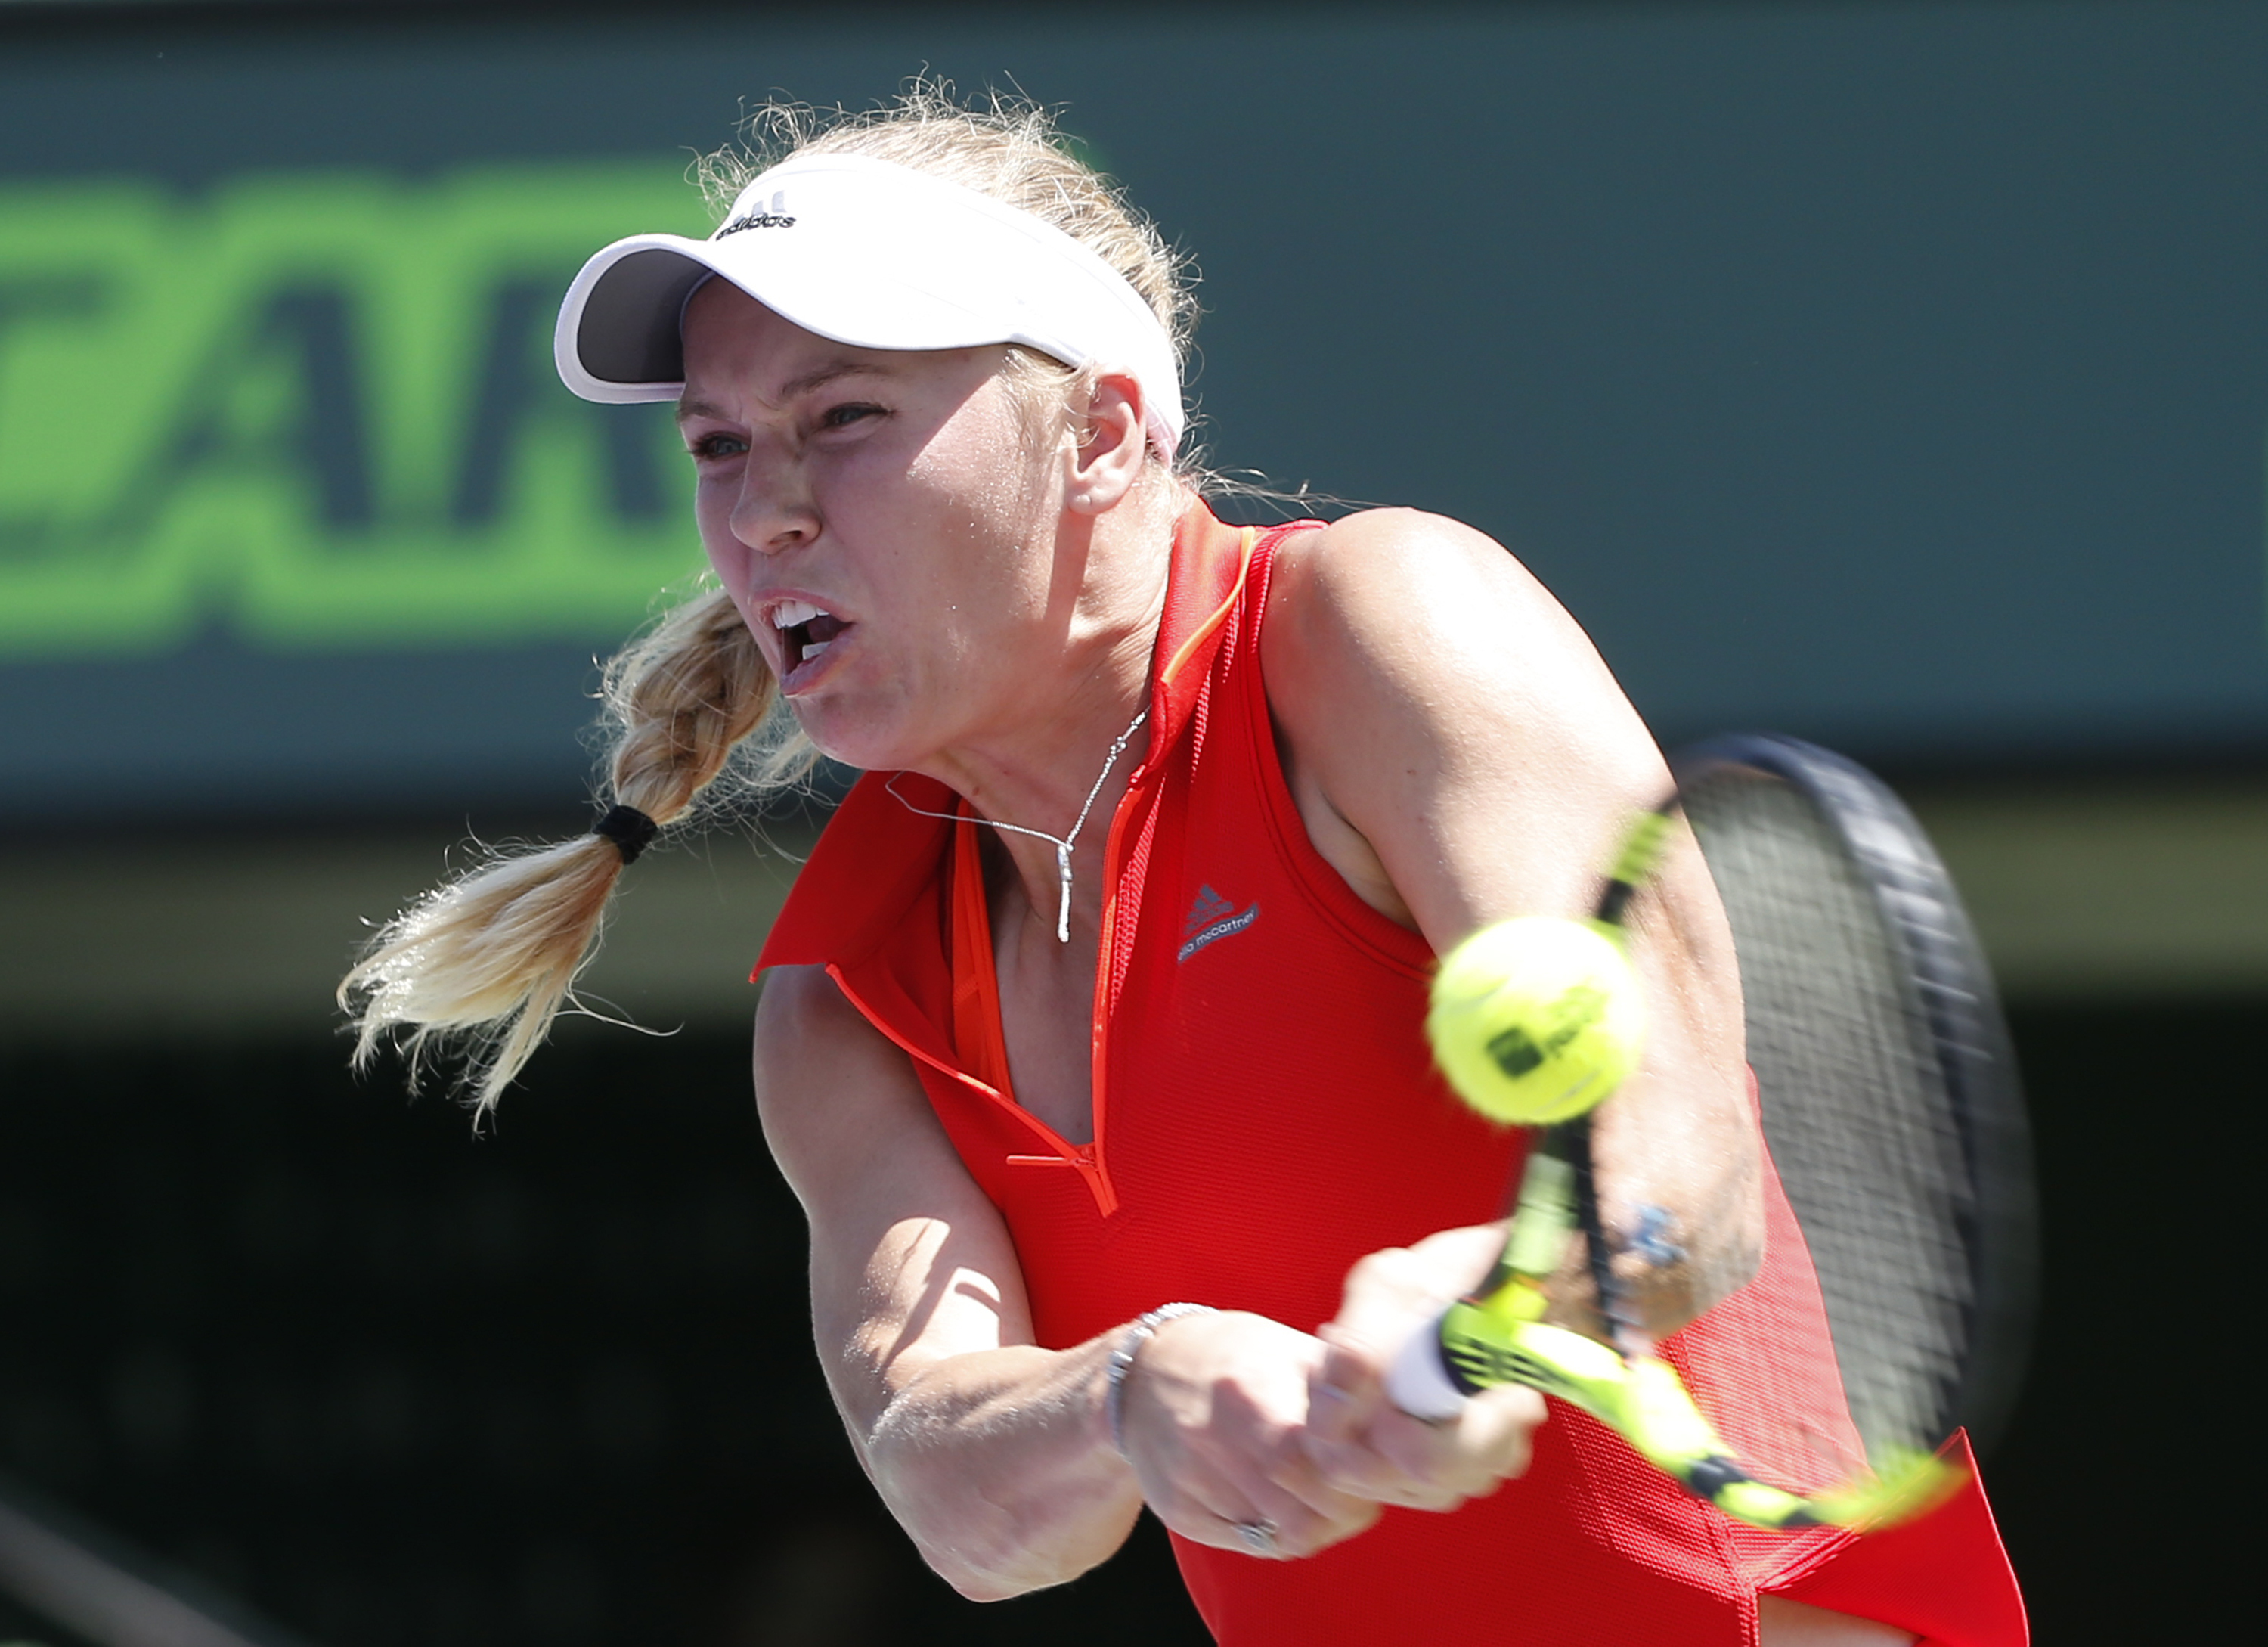 Caroline Wozniacki, of Denmark, returns a shot from Garbine Muguruza, of Spain, during a tennis match at the Miami Open, Monday, March 27, 2017, in Key Biscayne, Fla. (AP Photo/Wilfredo Lee)